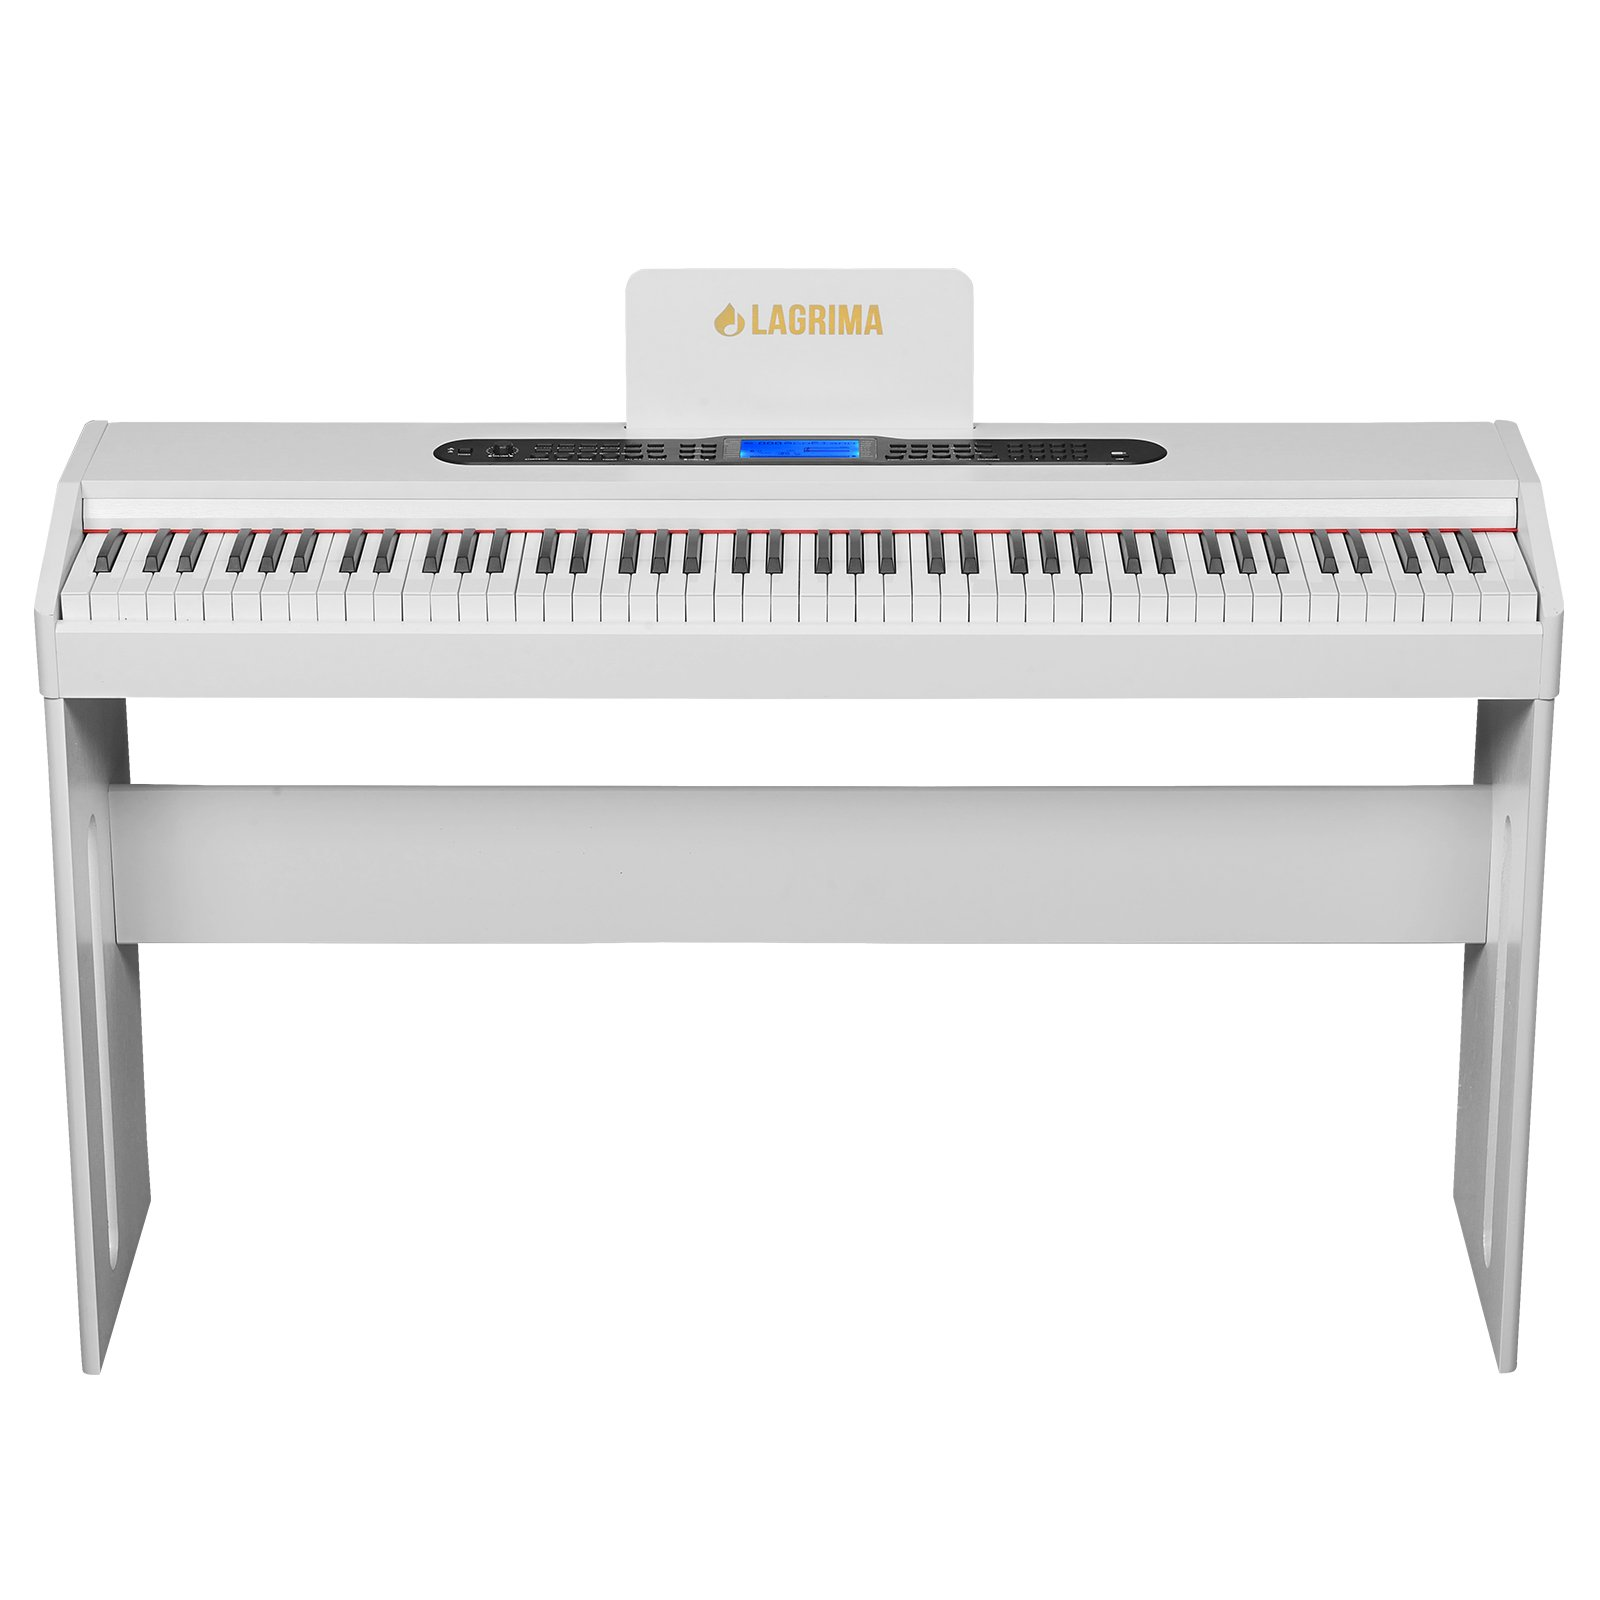 LAGRIMA White Digital Piano, 88 Keys Electric Piano Keyboard for Beginner/Adults W/Music Stand+Dust Cover+Power Adapter+1-Pedal Board+Instruction Book+Headphone Jack by LAGRIMA (Image #2)